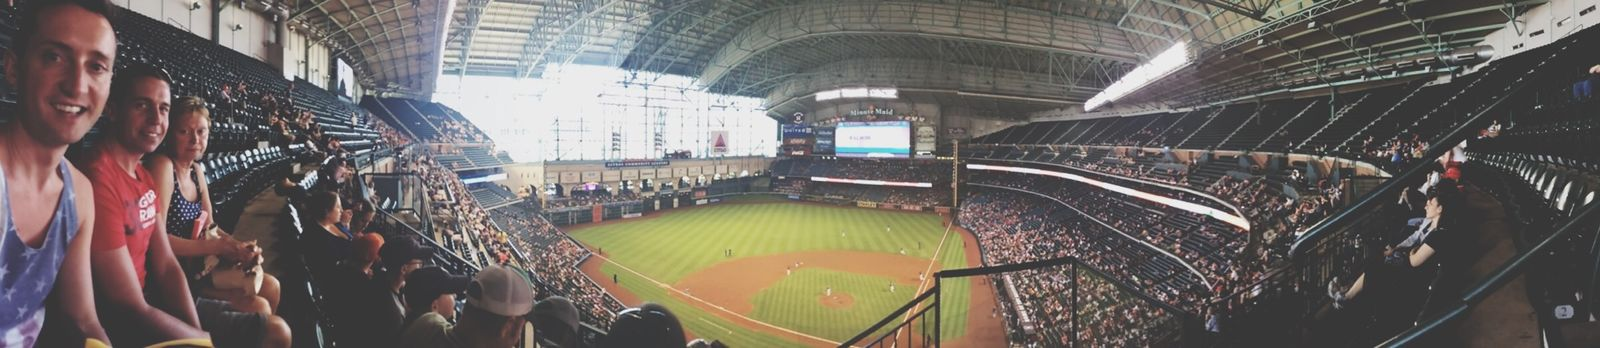 Take me out to the ball game HoustonTexasBaby Being A Tourist